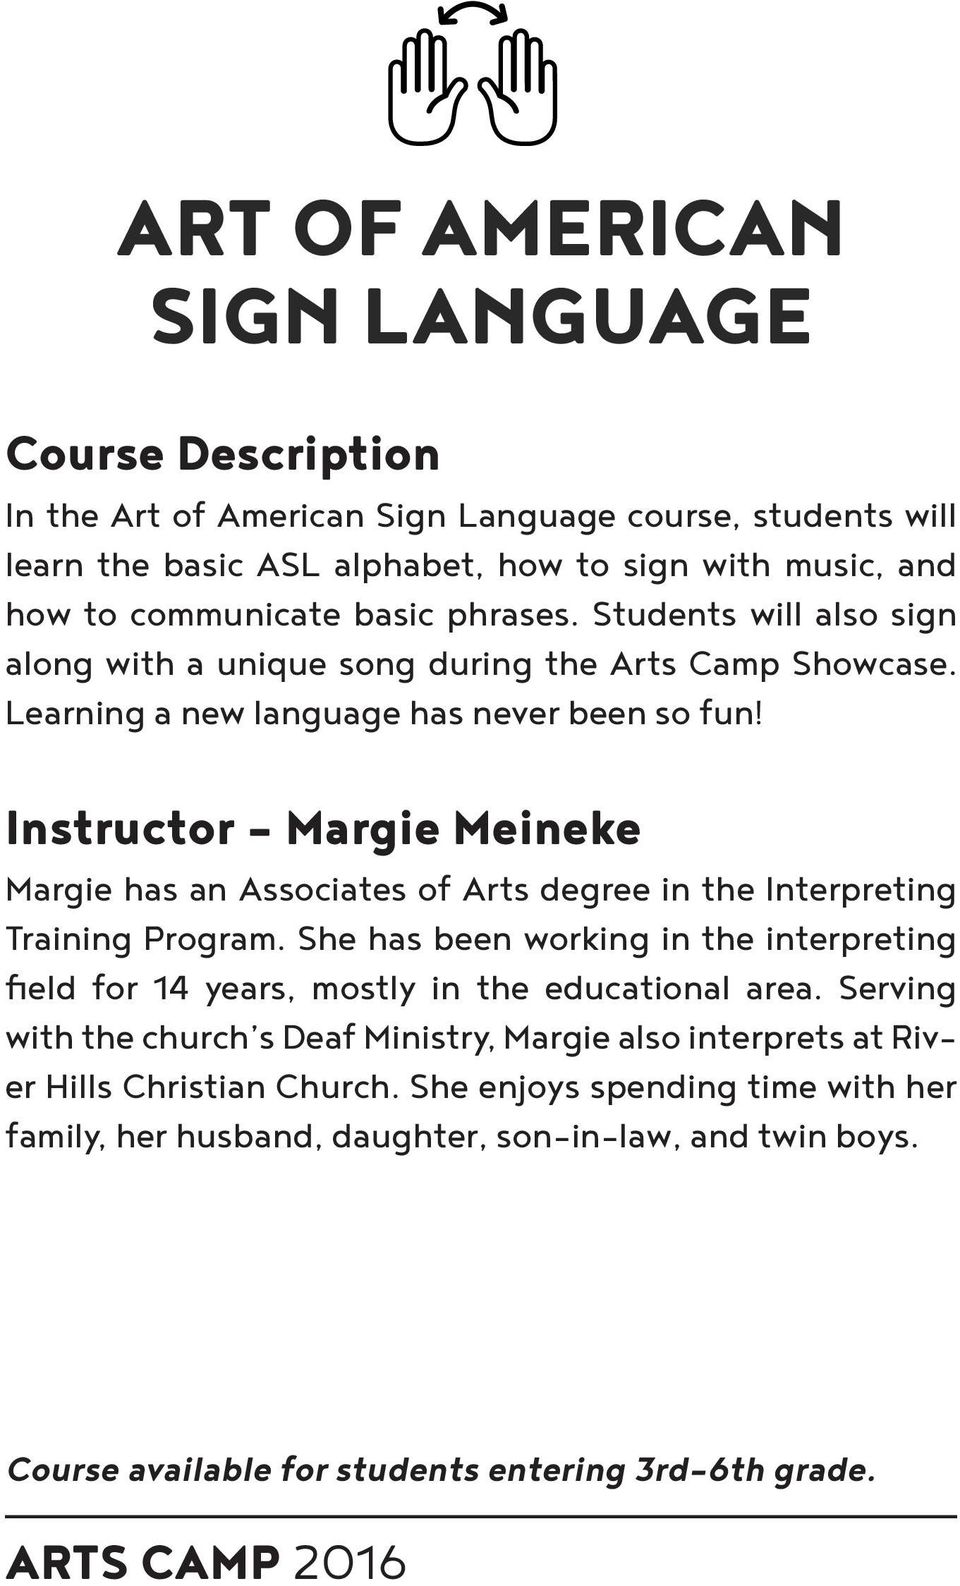 Instructor - Margie Meineke Margie has an Associates of Arts degree in the Interpreting Training Program.